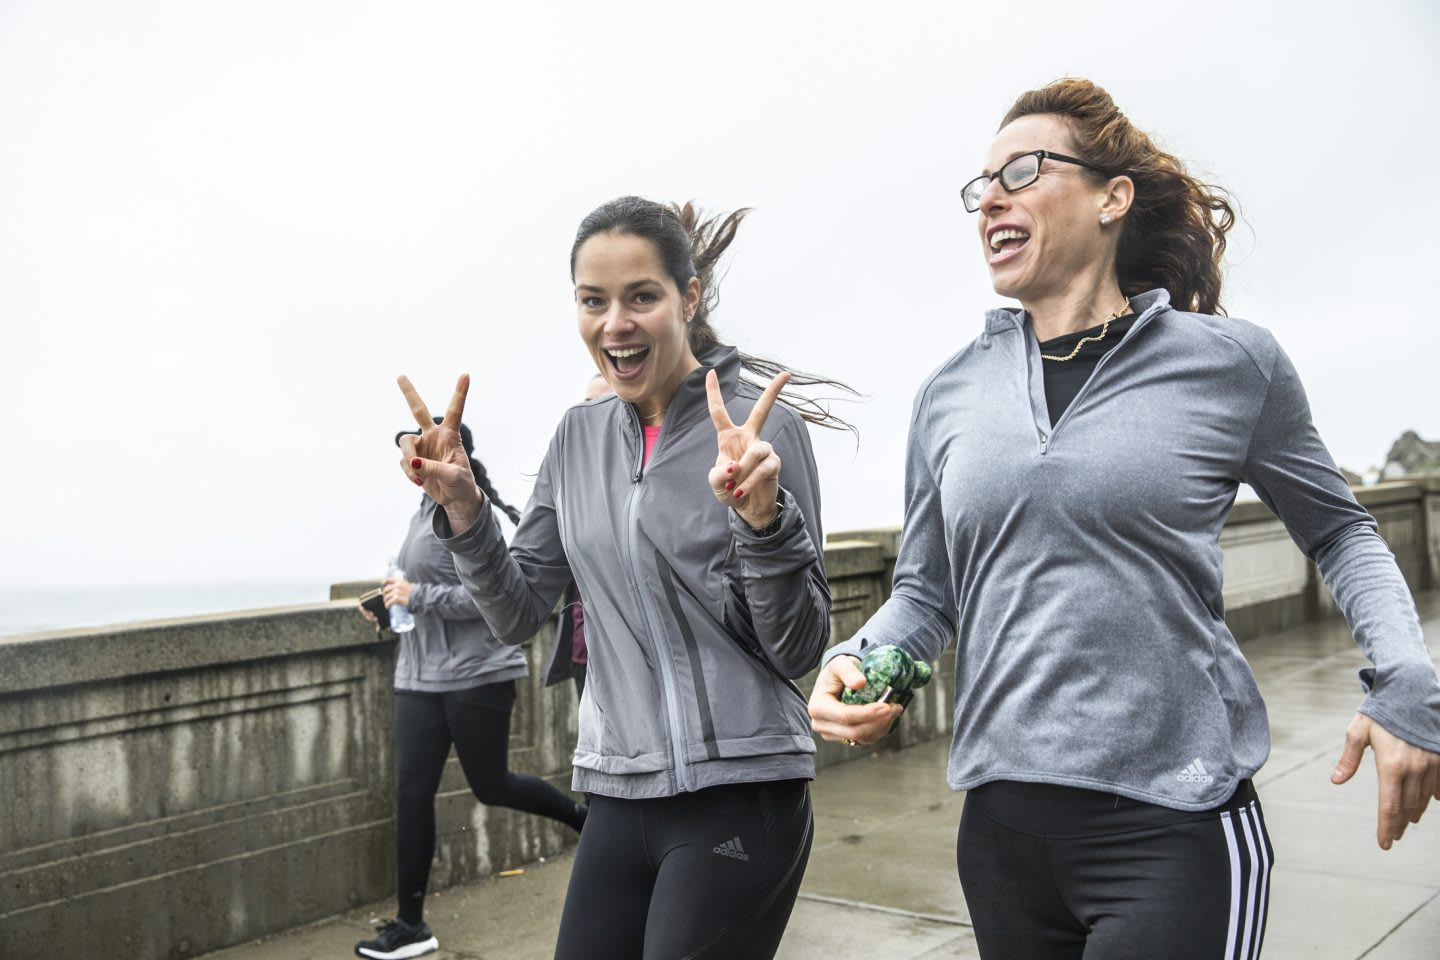 Ana-Ivanovic-enjoys-running-with-friends-ultraBoost-X interview listen to your heart